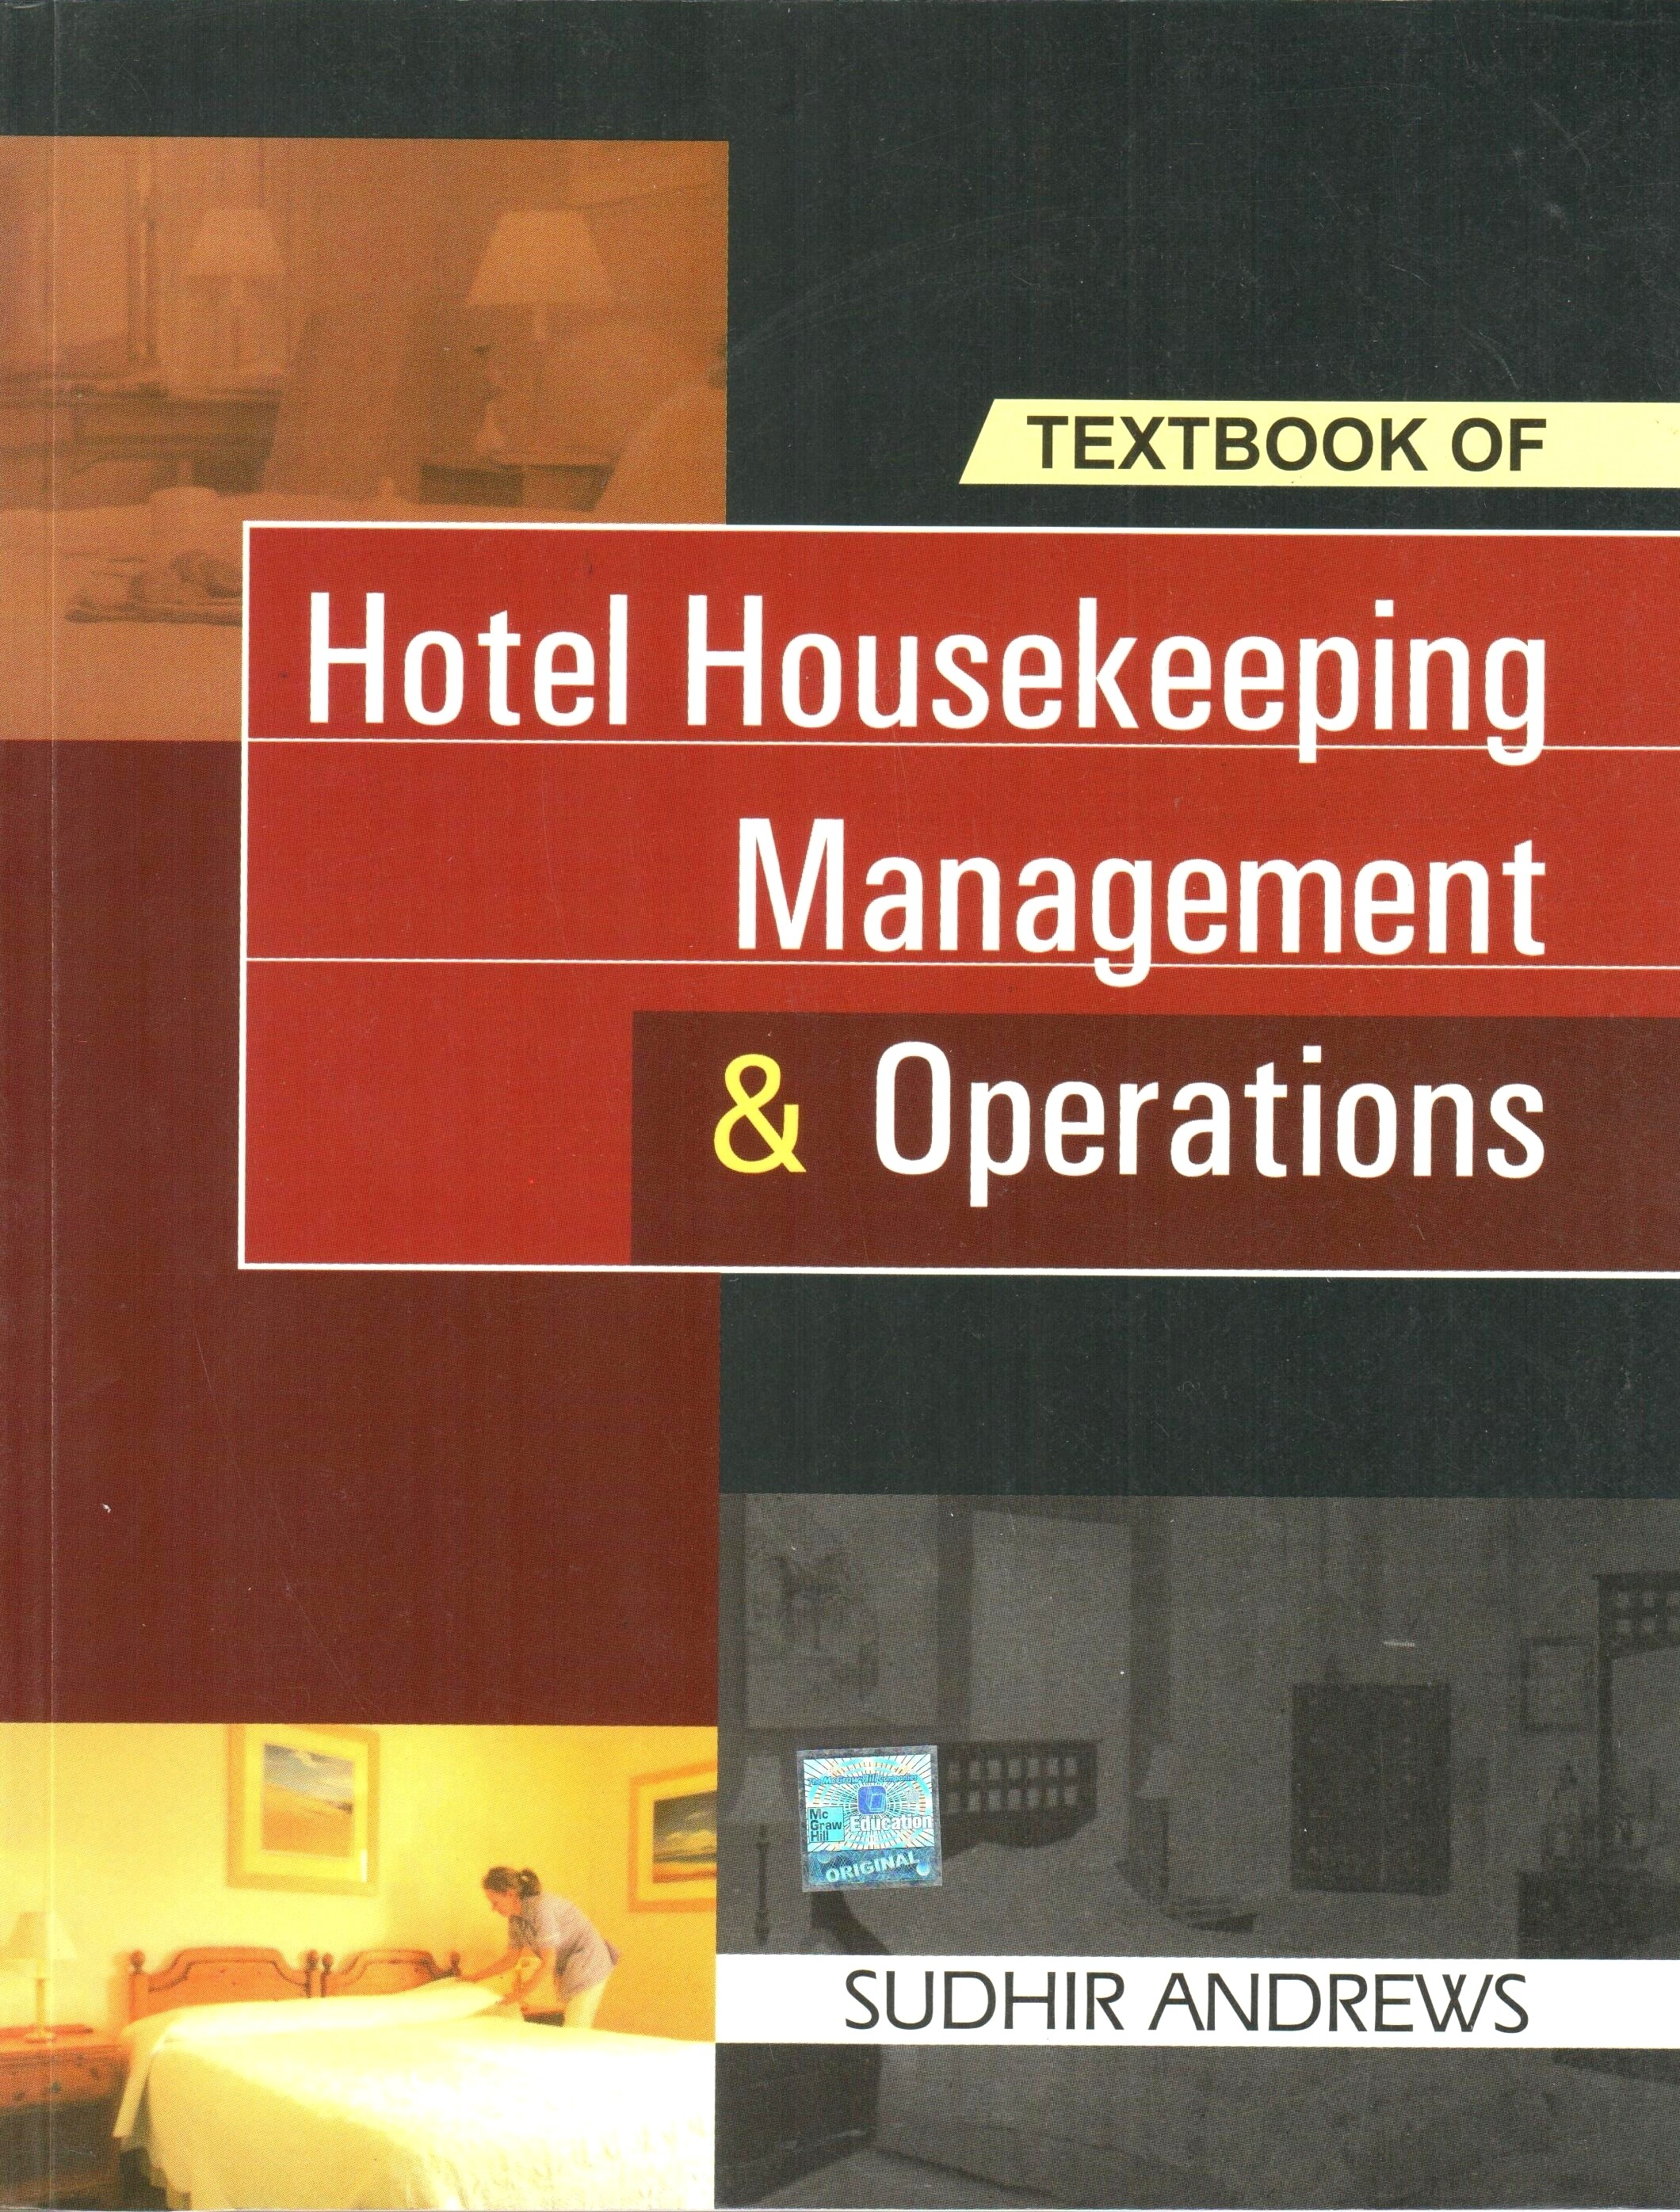 Hotel and Hospitality Management accountonline best buy